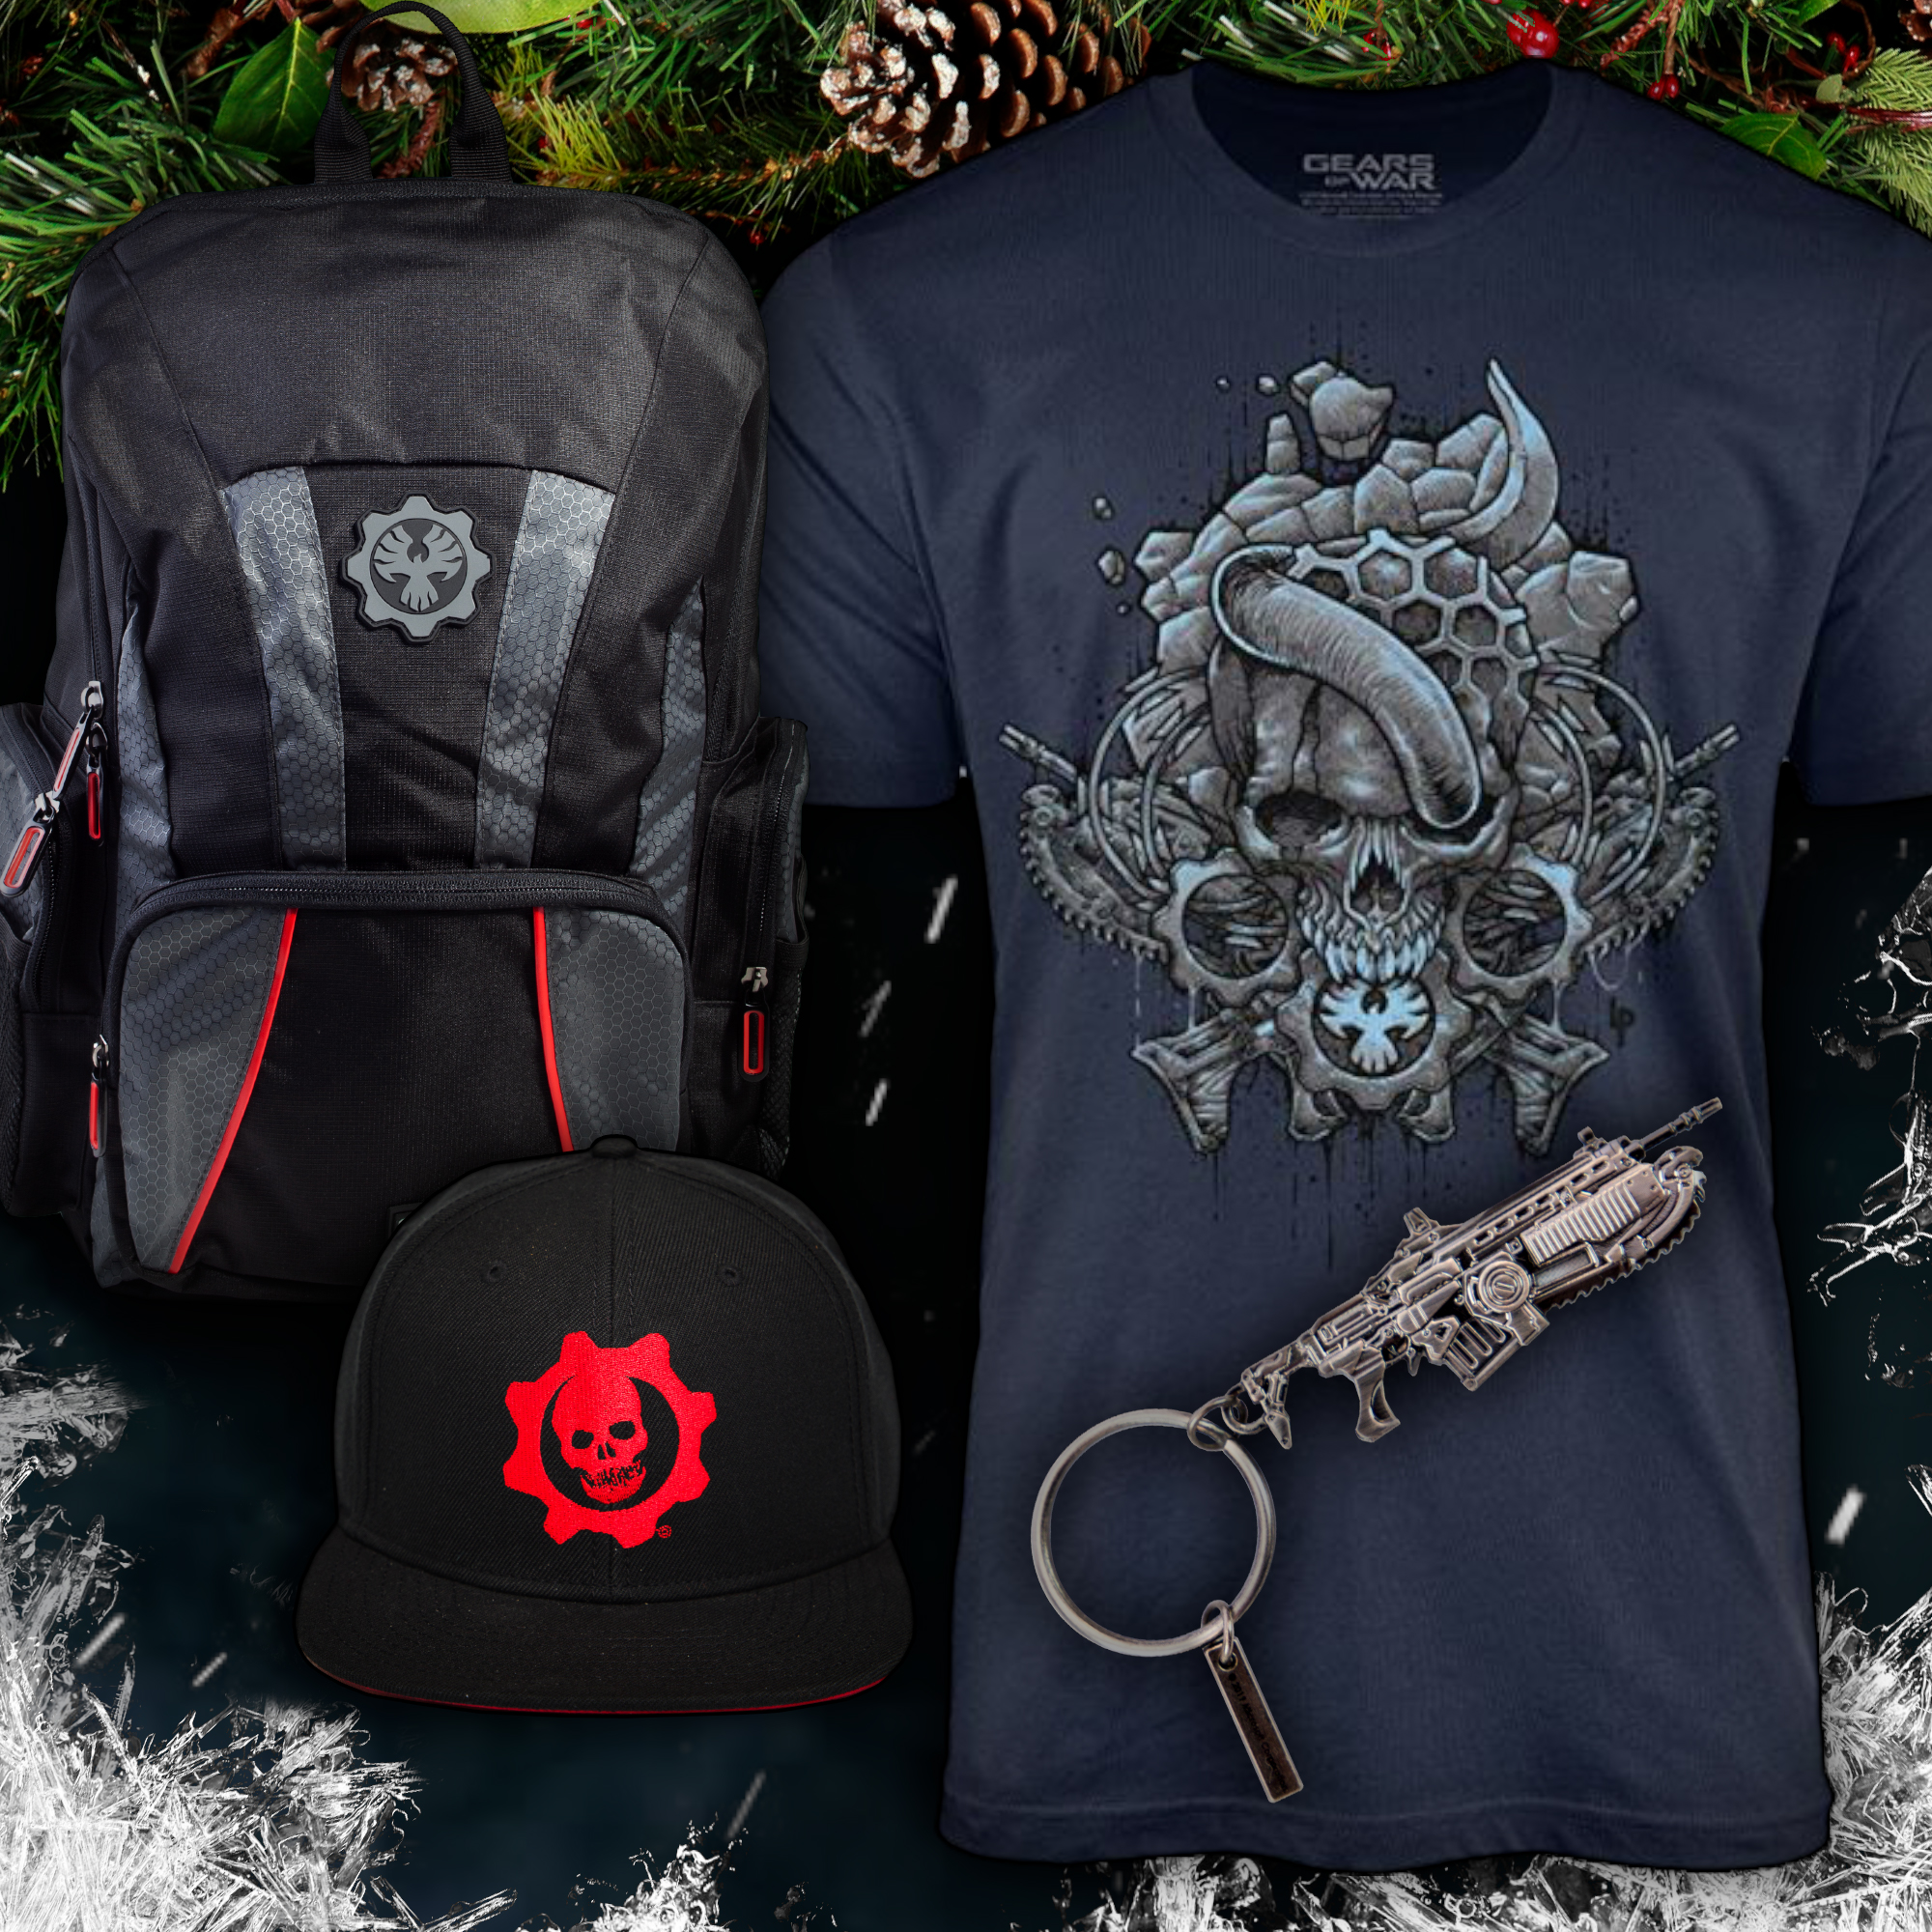 Gears 5 themed apparel on a display